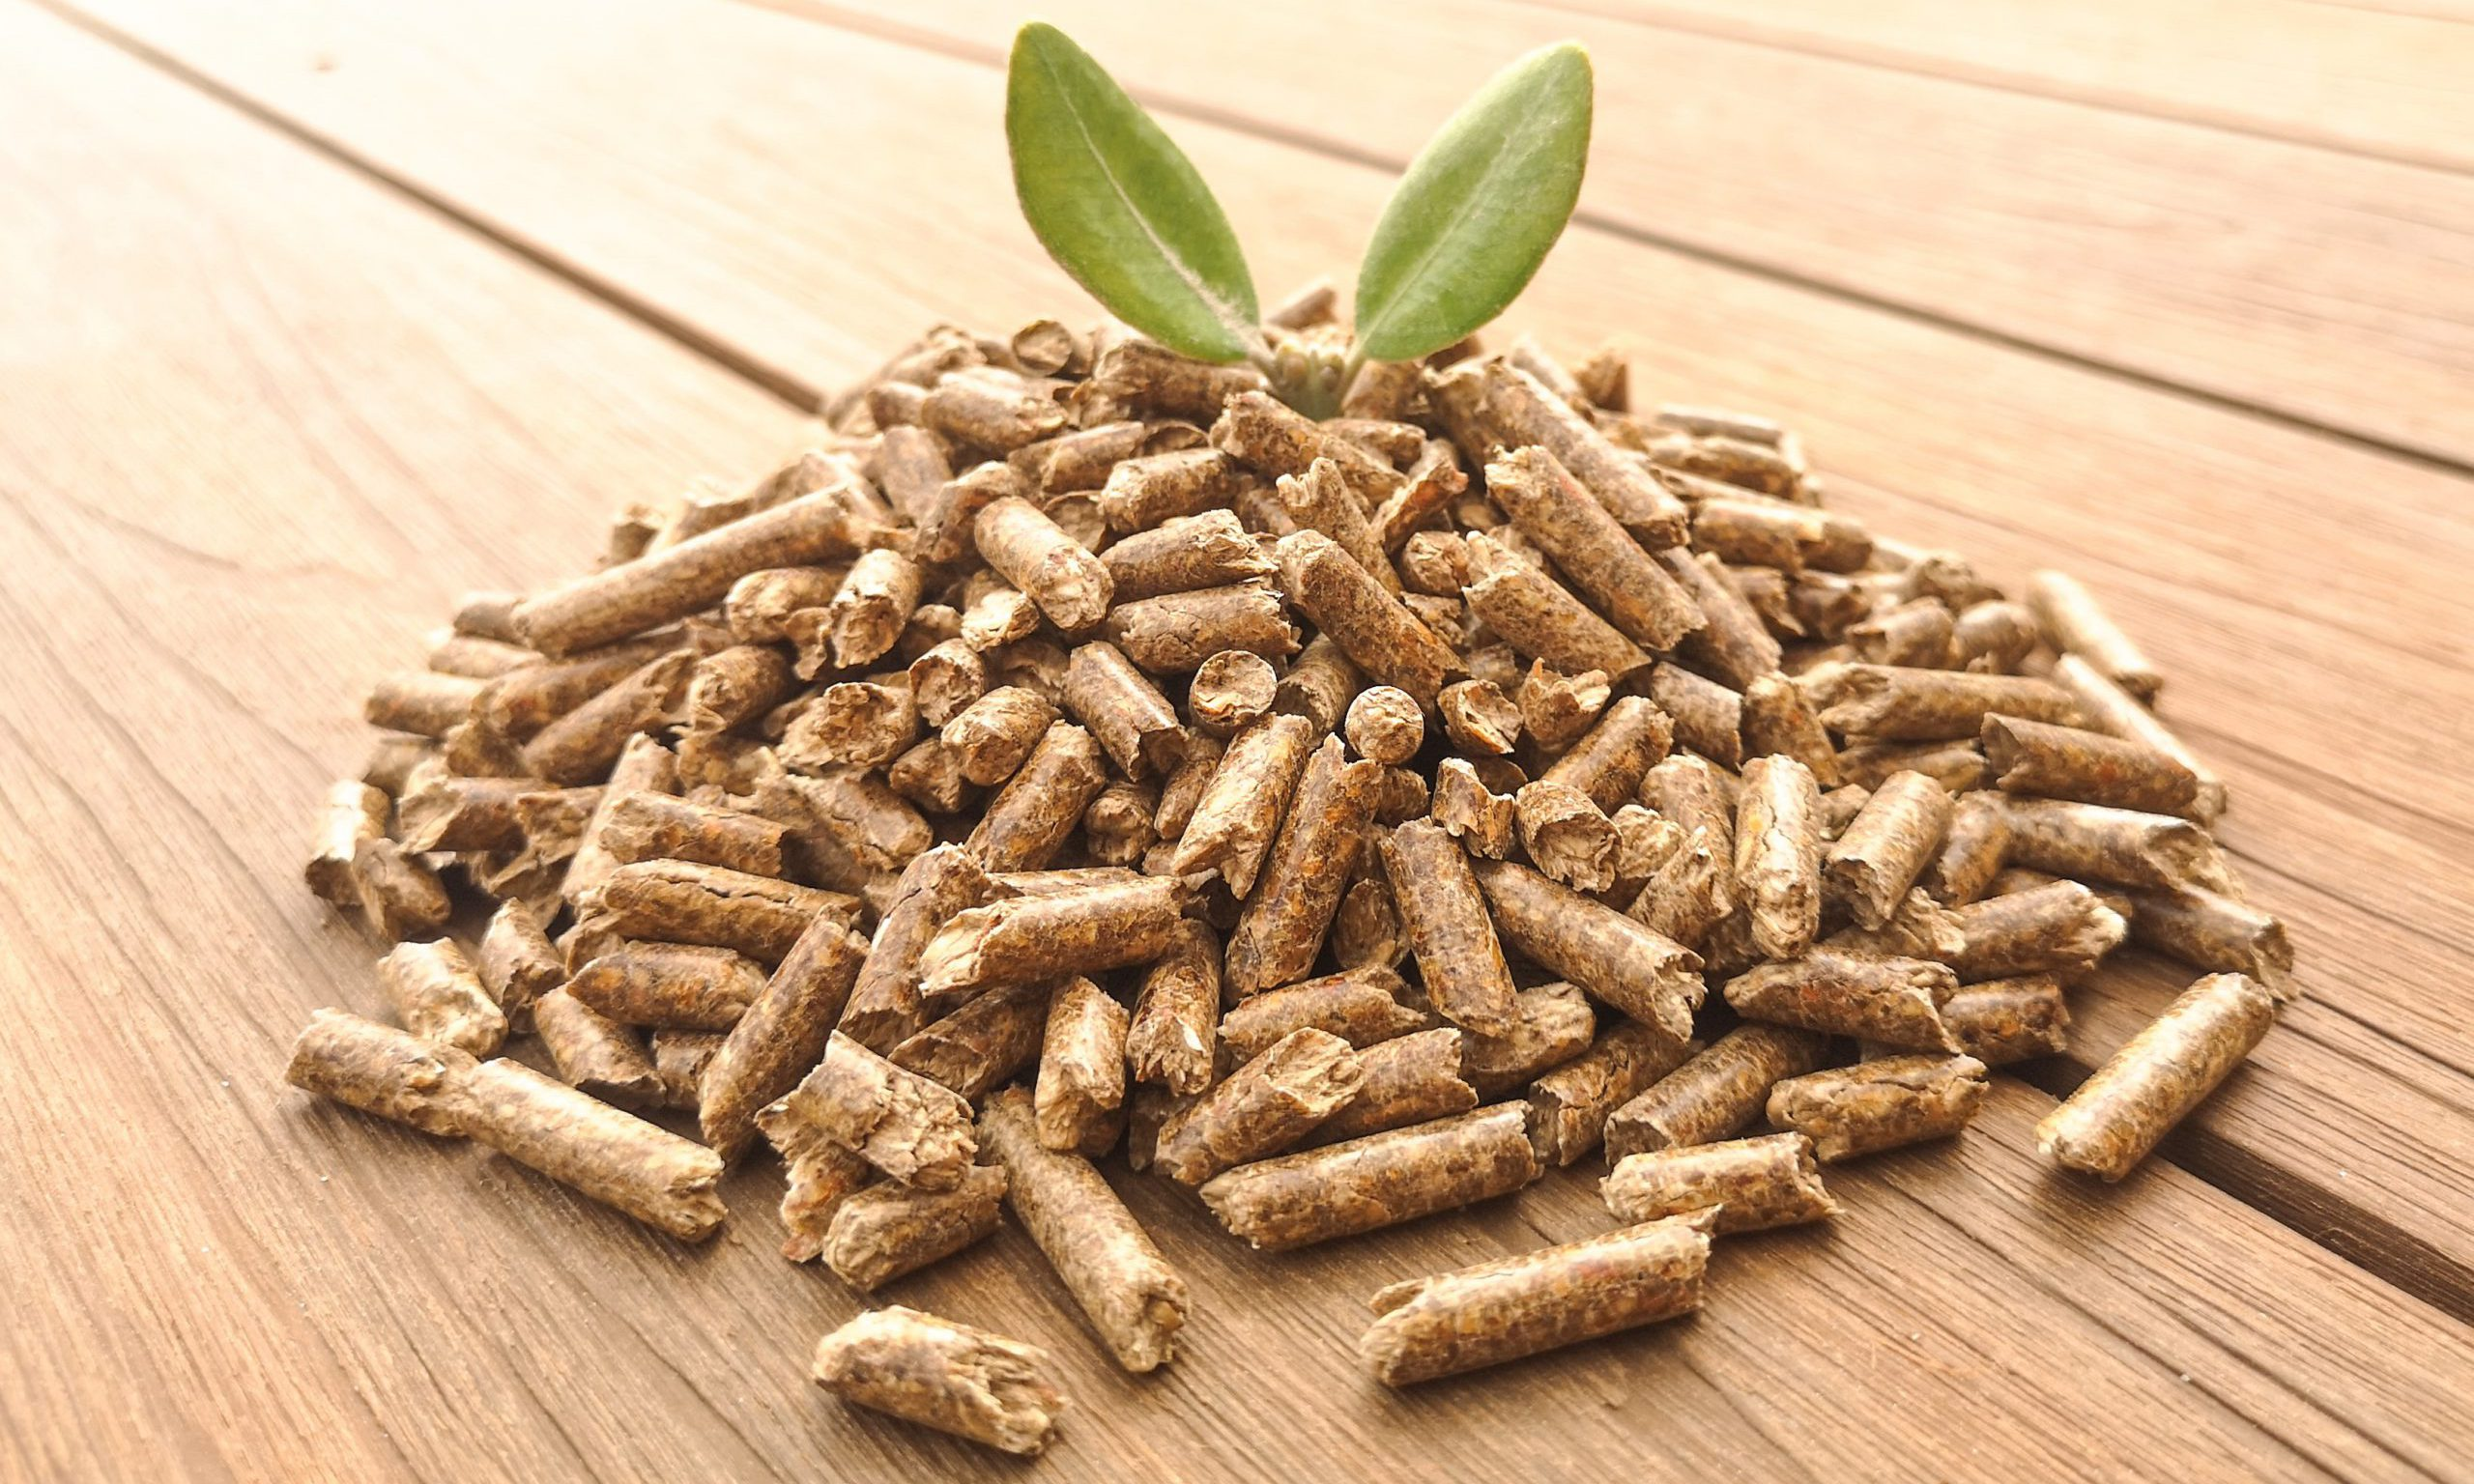 What wood pellet is the best quality?